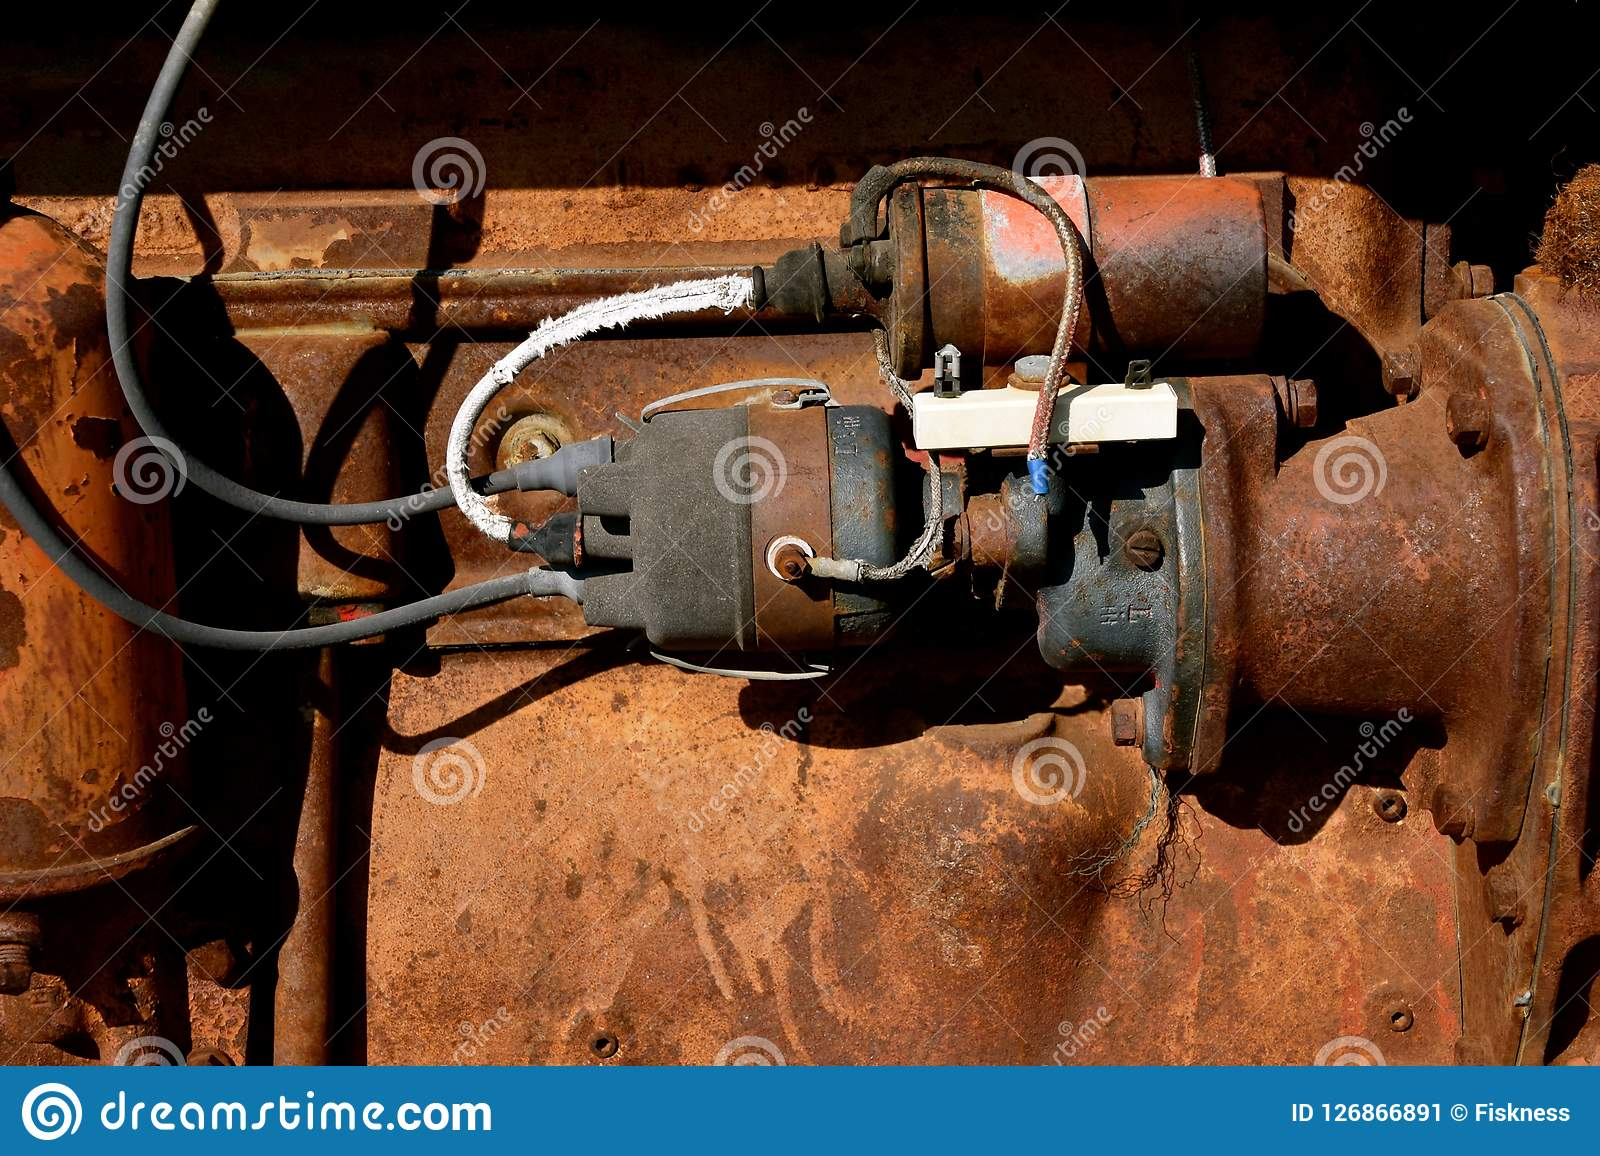 hight resolution of starter wiring and ignition on an old tractor stock image image of lawn tractor starter solenoid wiring diagram tractor starter wiring